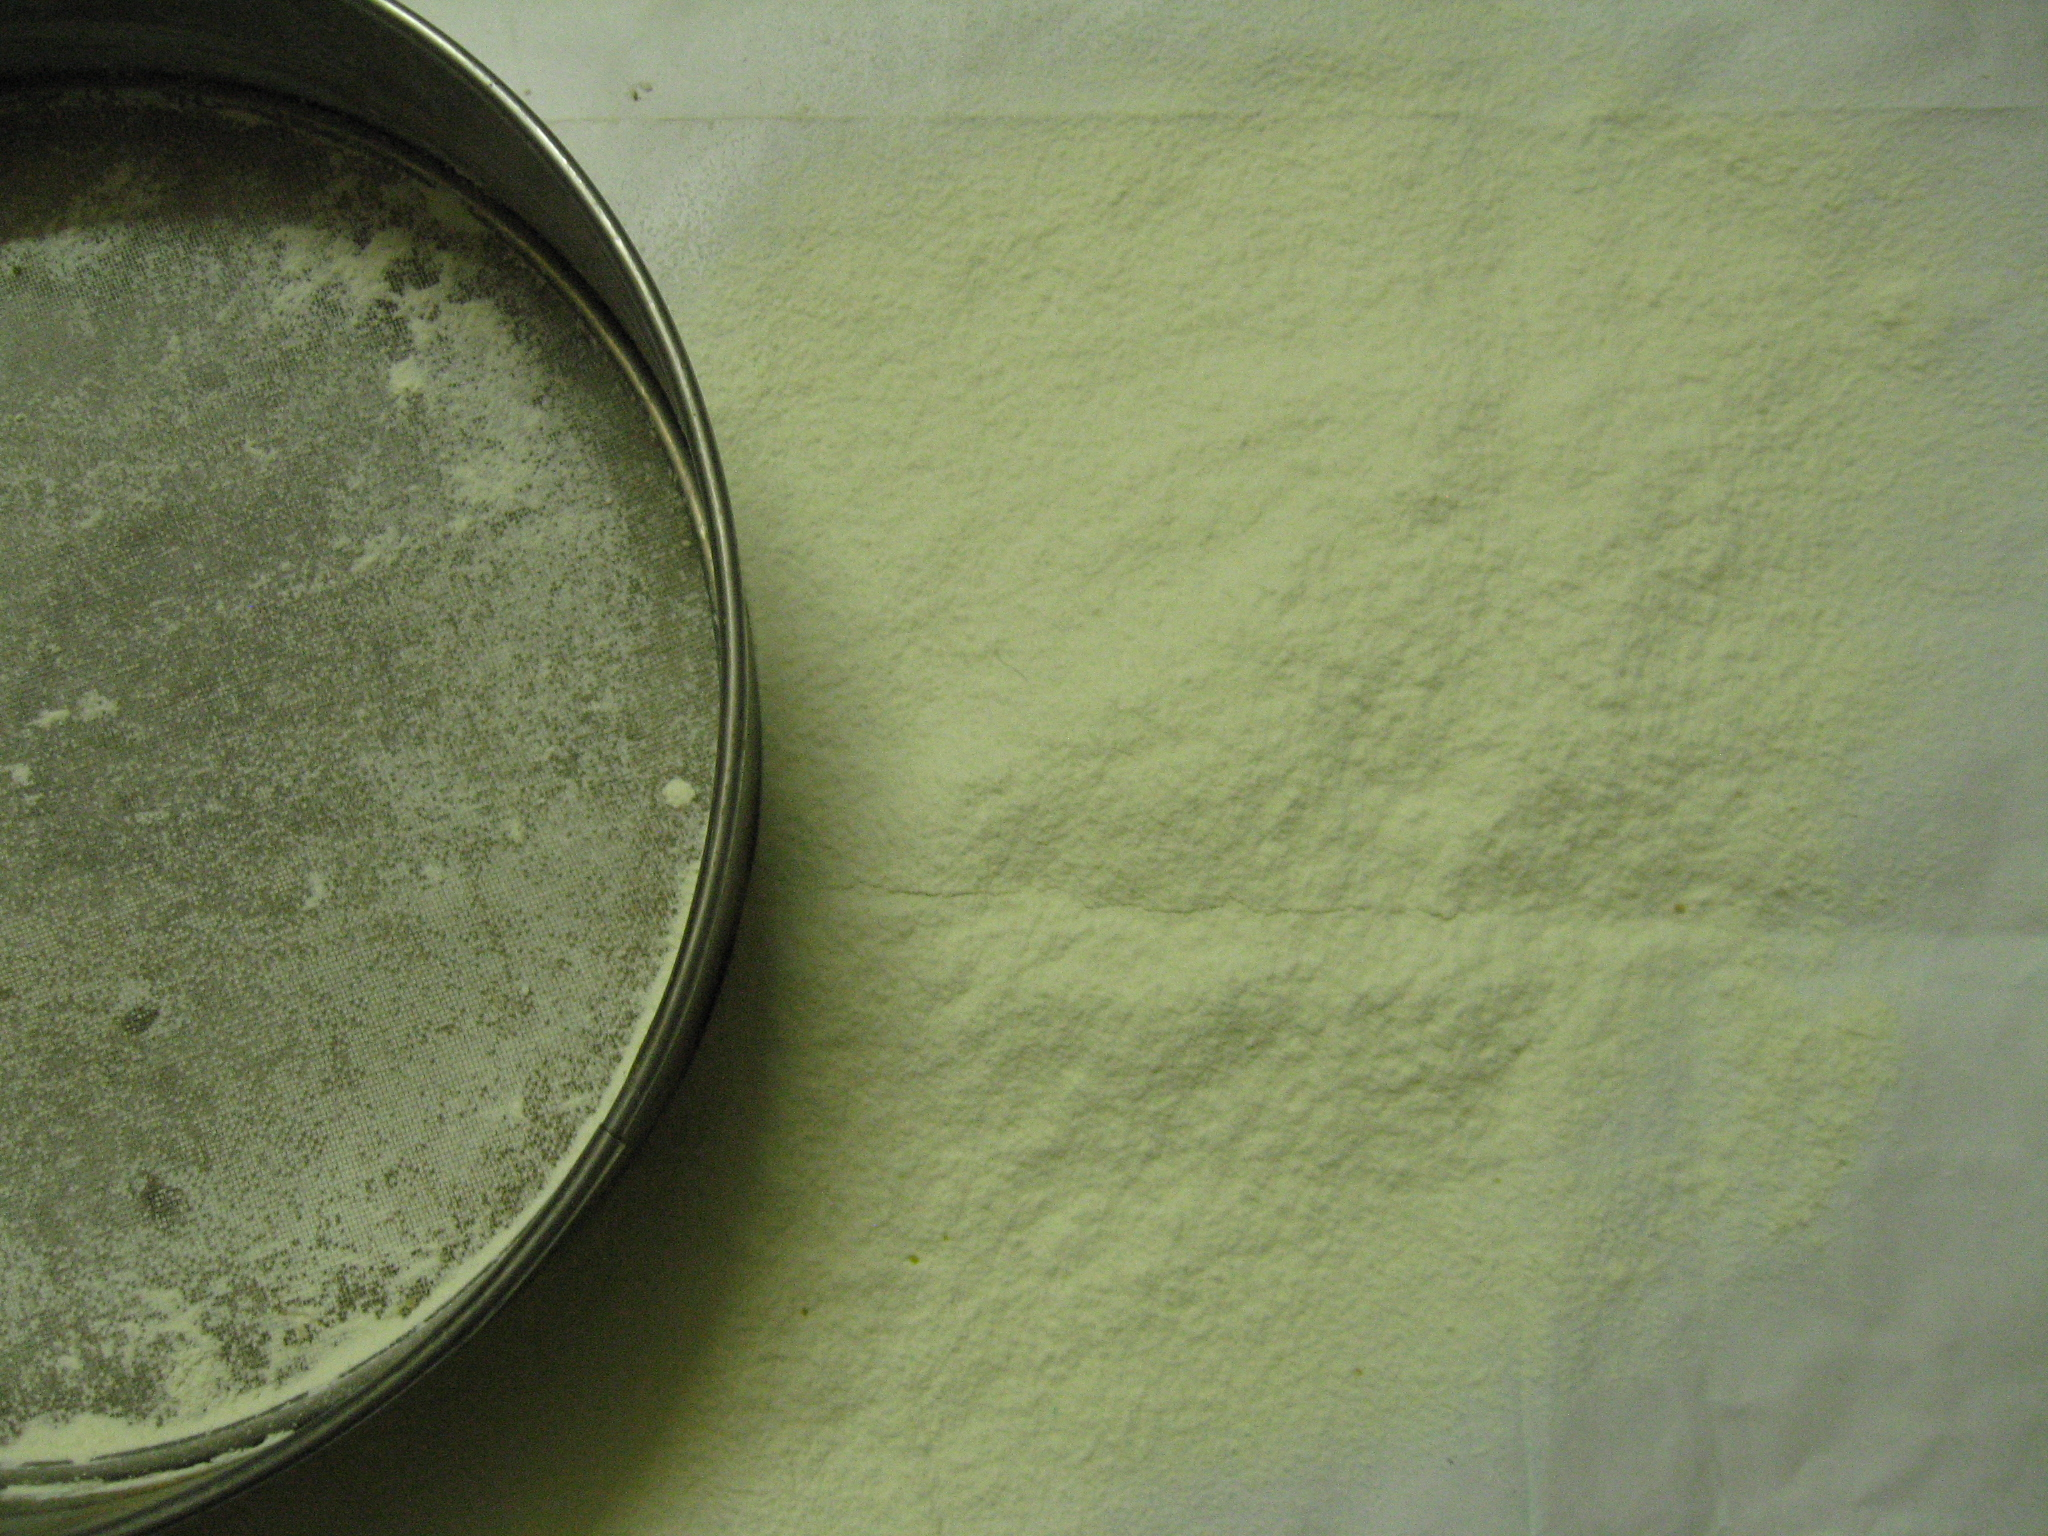 Picture of Add Icing Sugar and Make Frosting / Icing